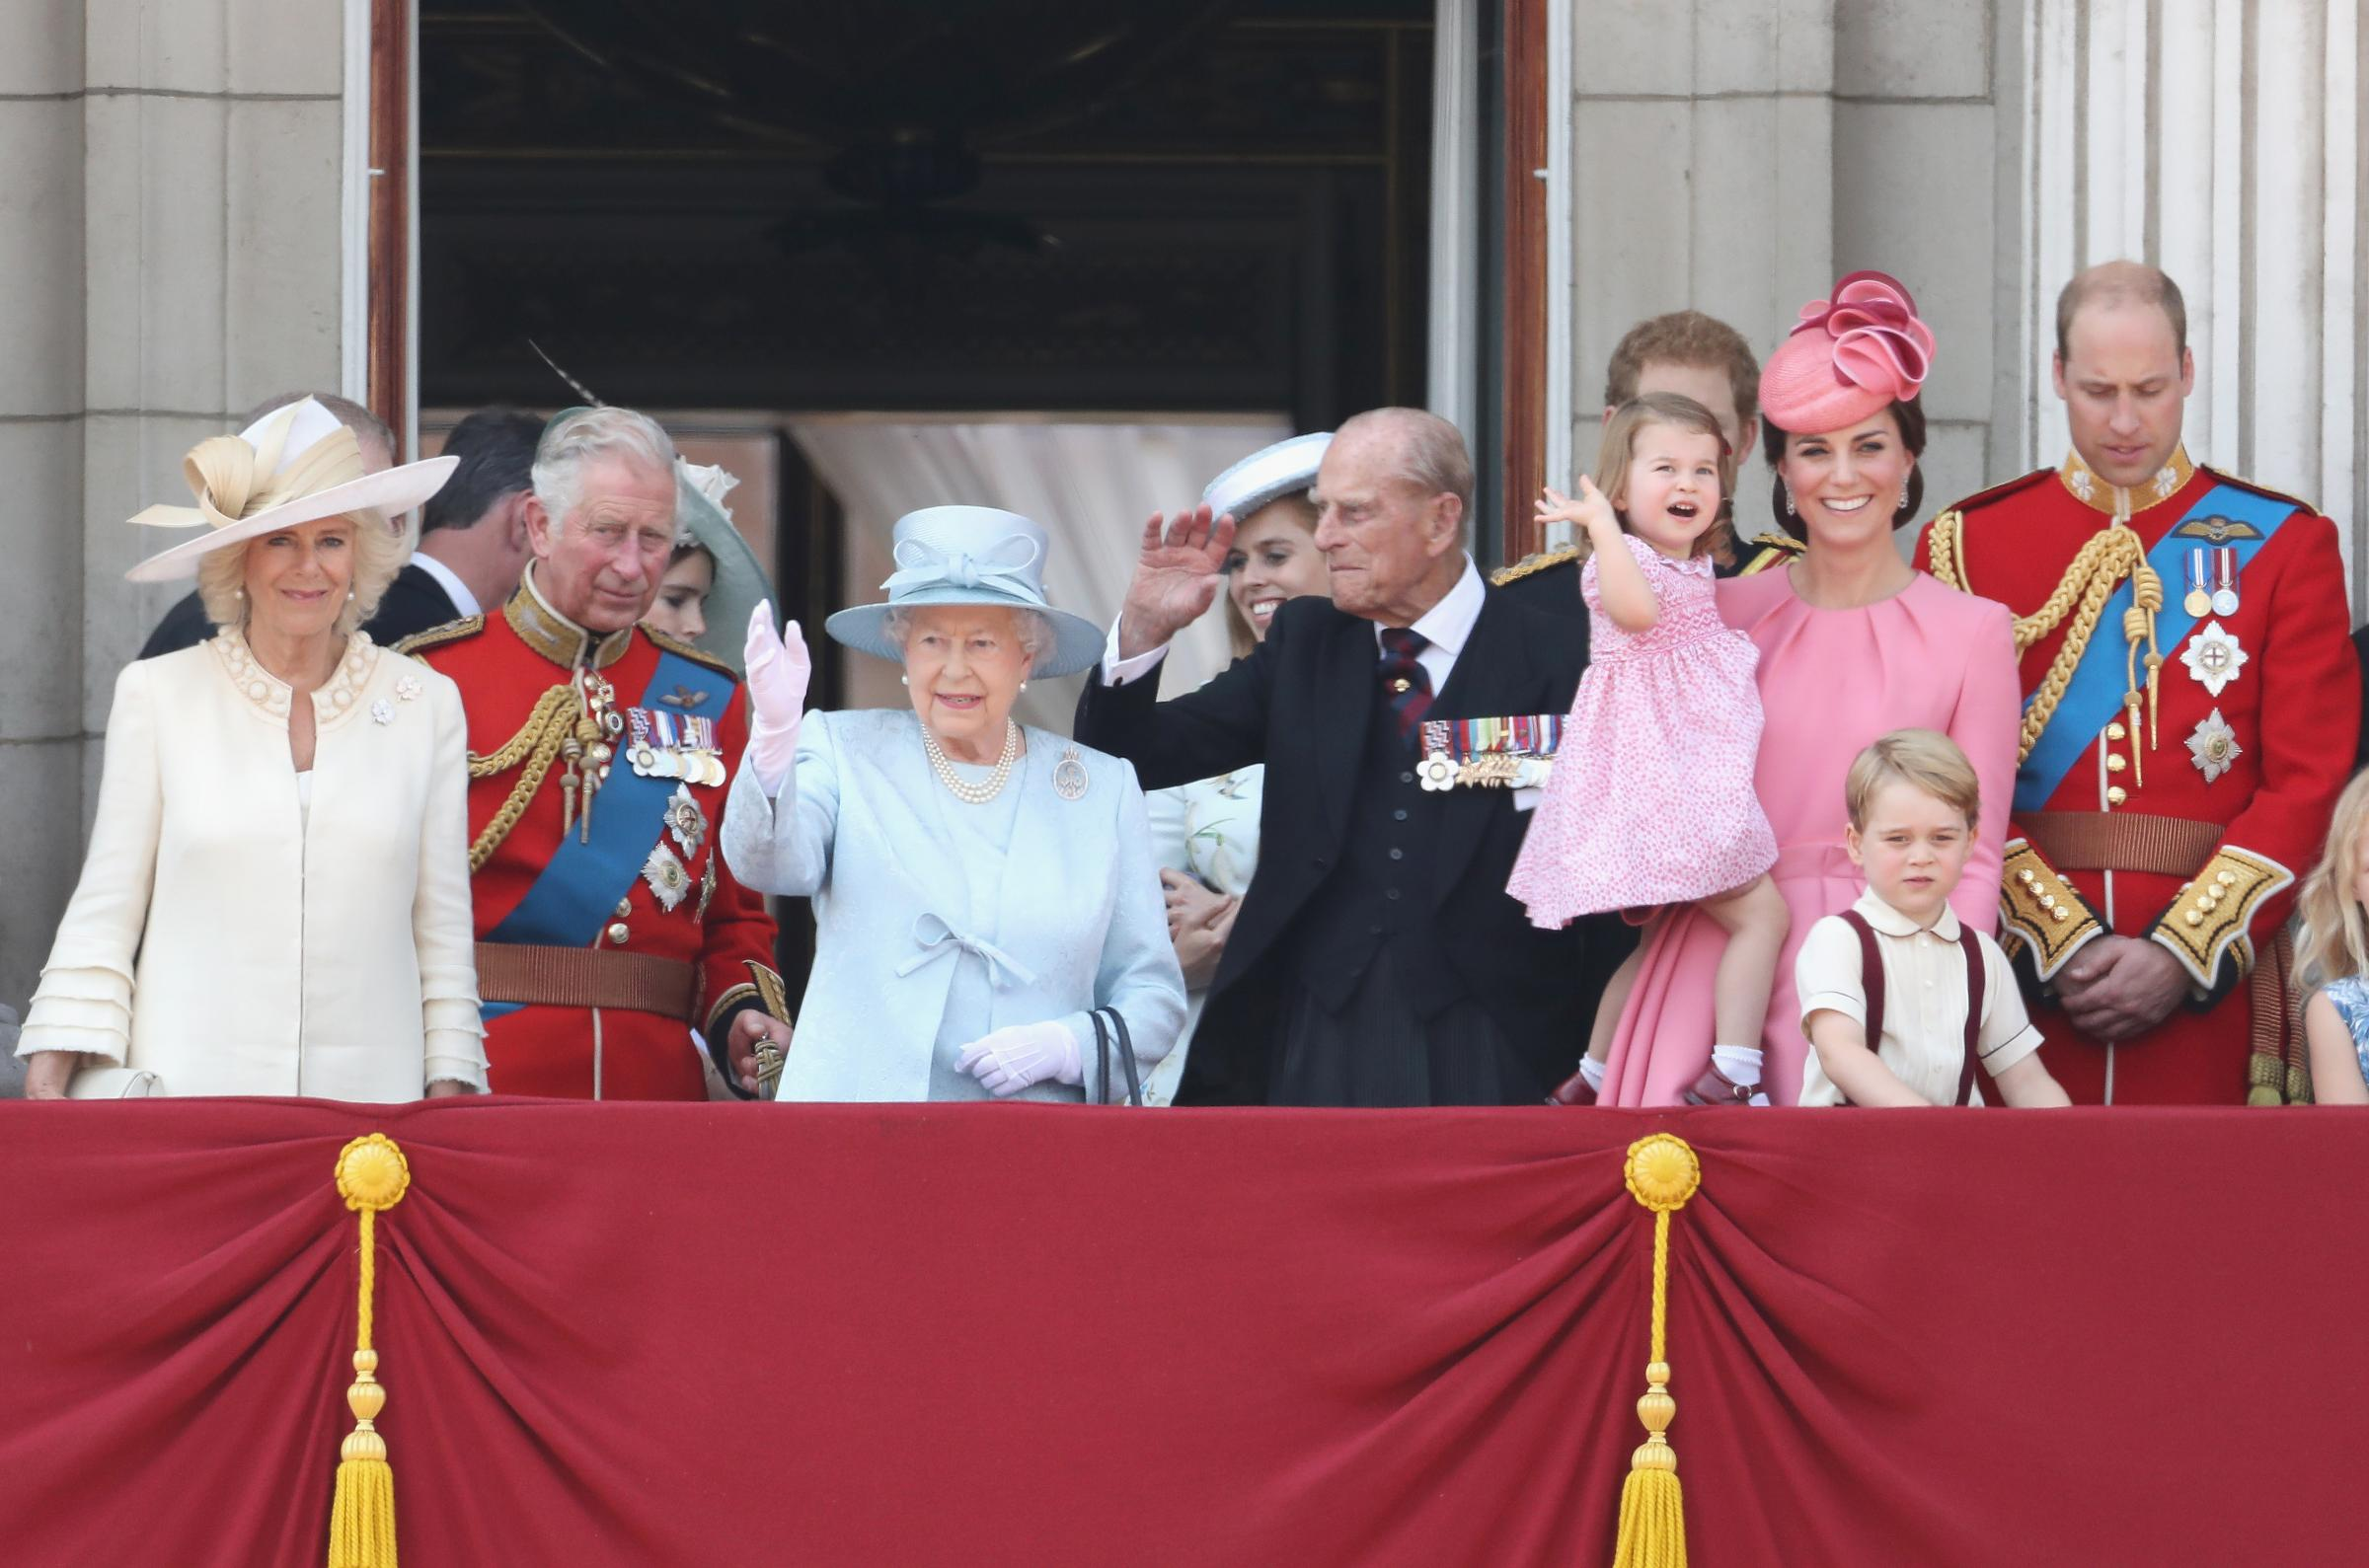 The Royal Family at Buckingham Palace during the Trooping the Colour parade in June this year. Photograph: Chris Jackson/Getty Images